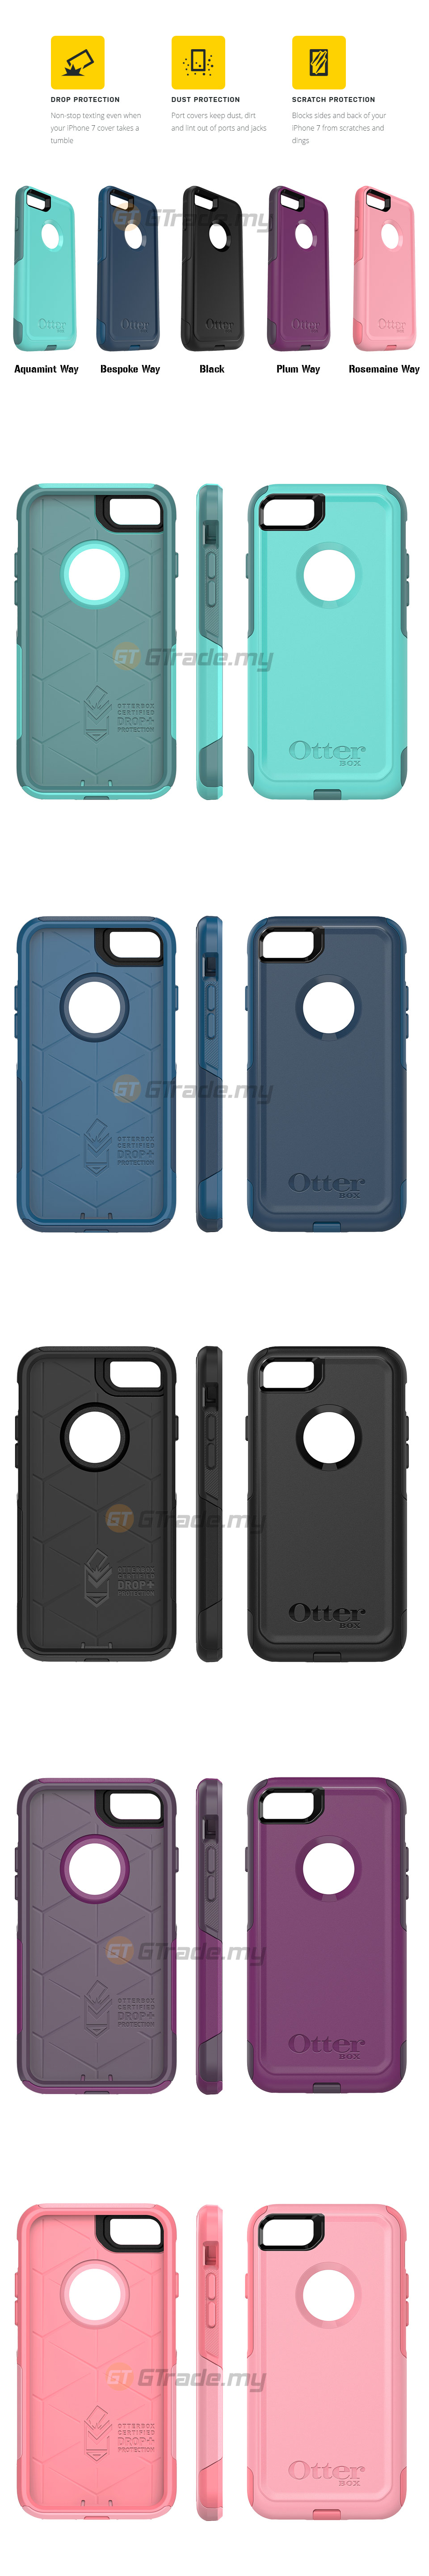 otterbox-commuter-case-apple-iphone-7-p